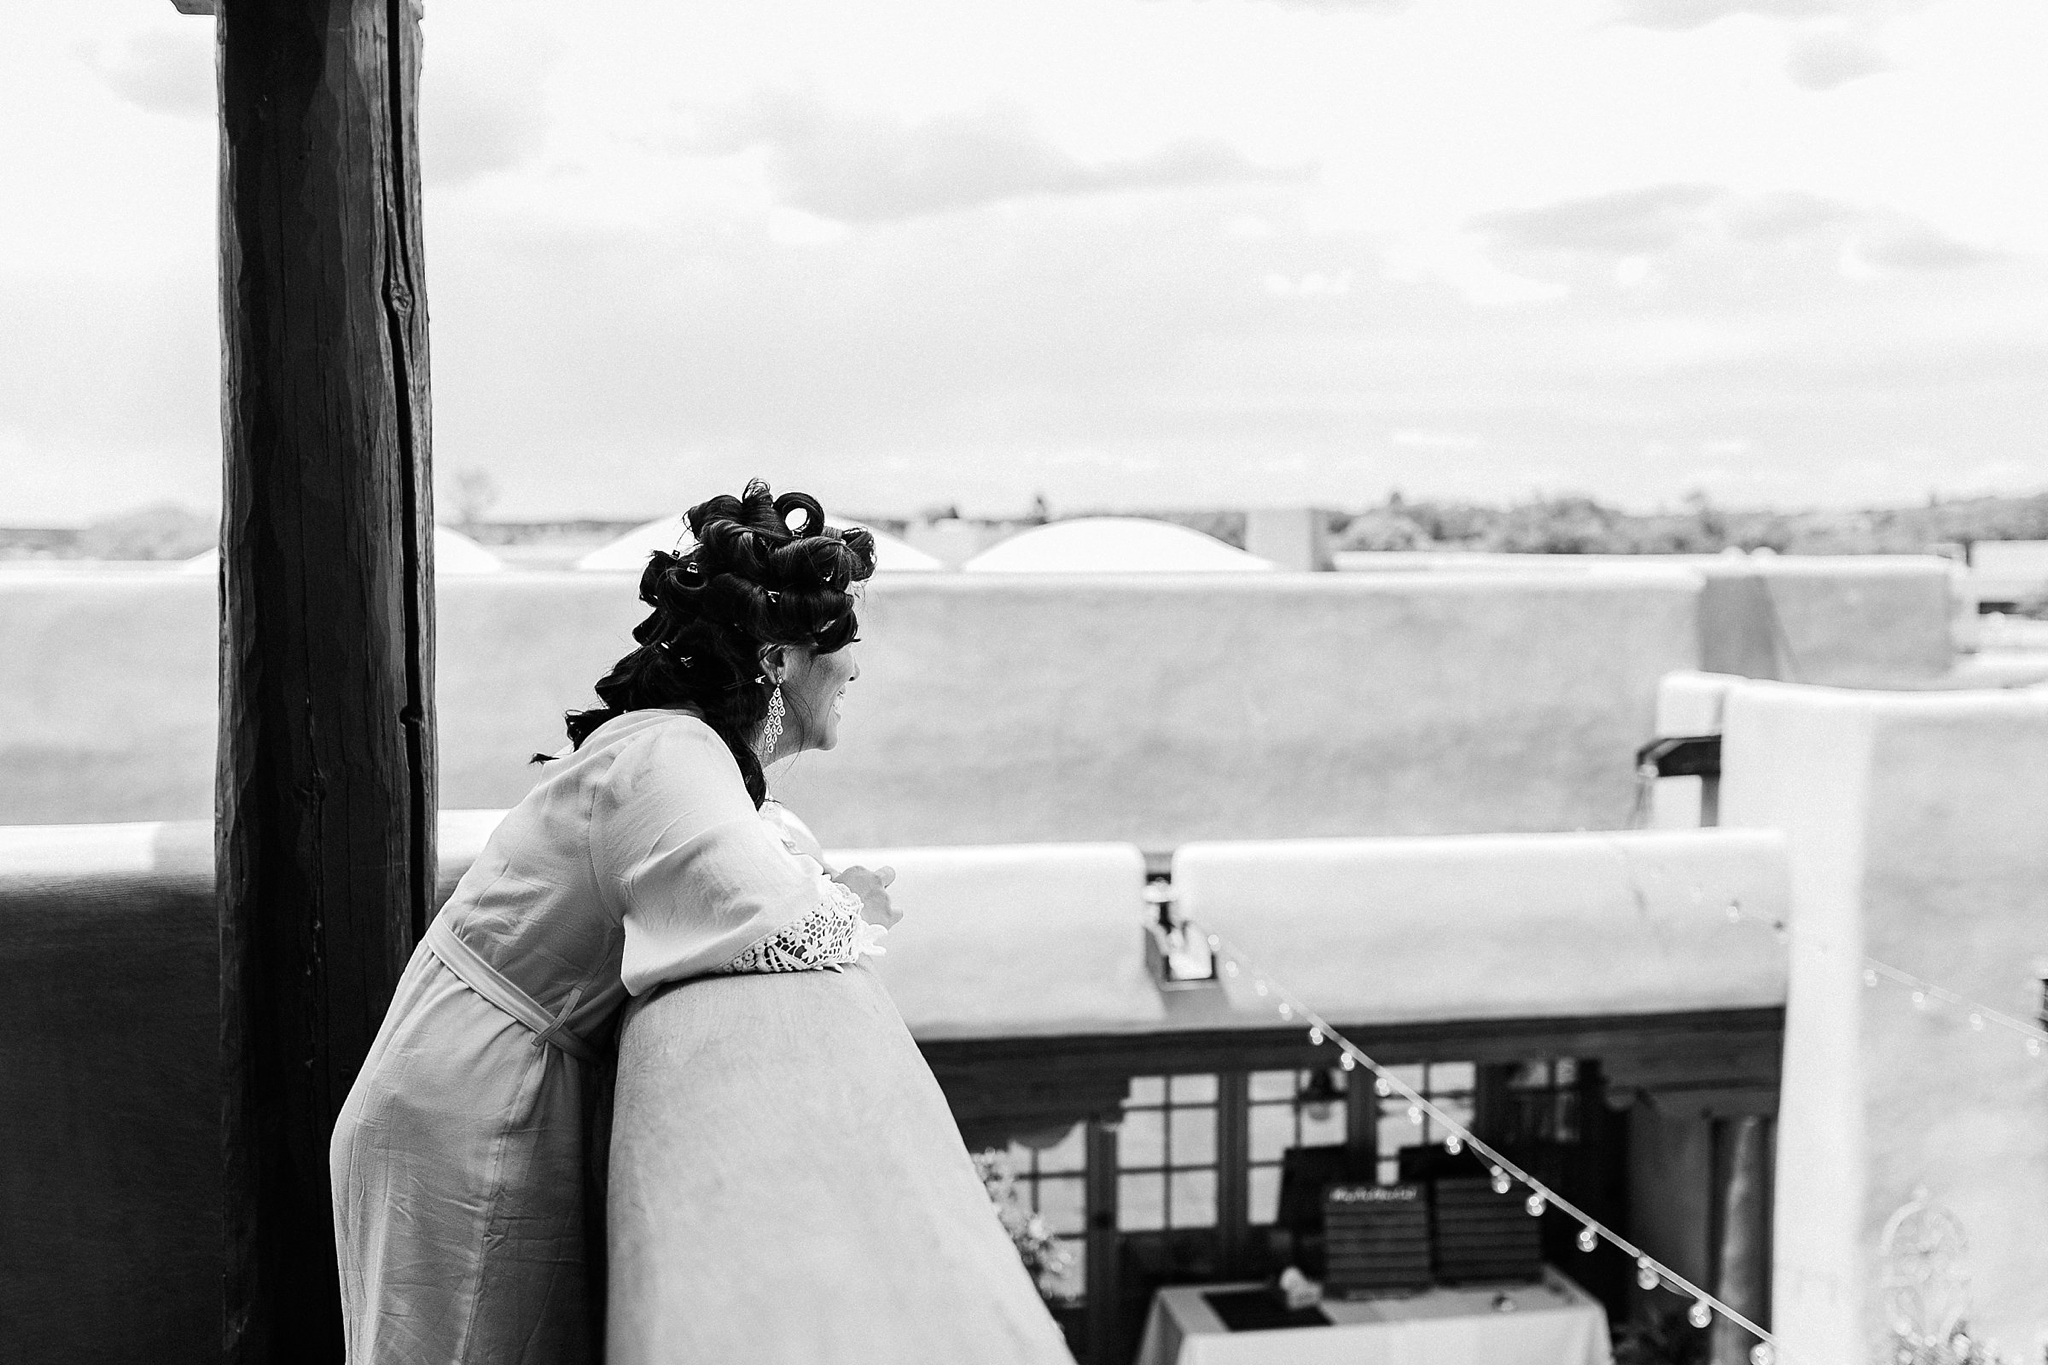 Alicia+lucia+photography+-+albuquerque+wedding+photographer+-+santa+fe+wedding+photography+-+new+mexico+wedding+photographer+-+new+mexico+wedding+-+engagement+-+santa+fe+wedding+-+la+fonda+on+the+plaza+-+la+fonda+wedding_0042.jpg